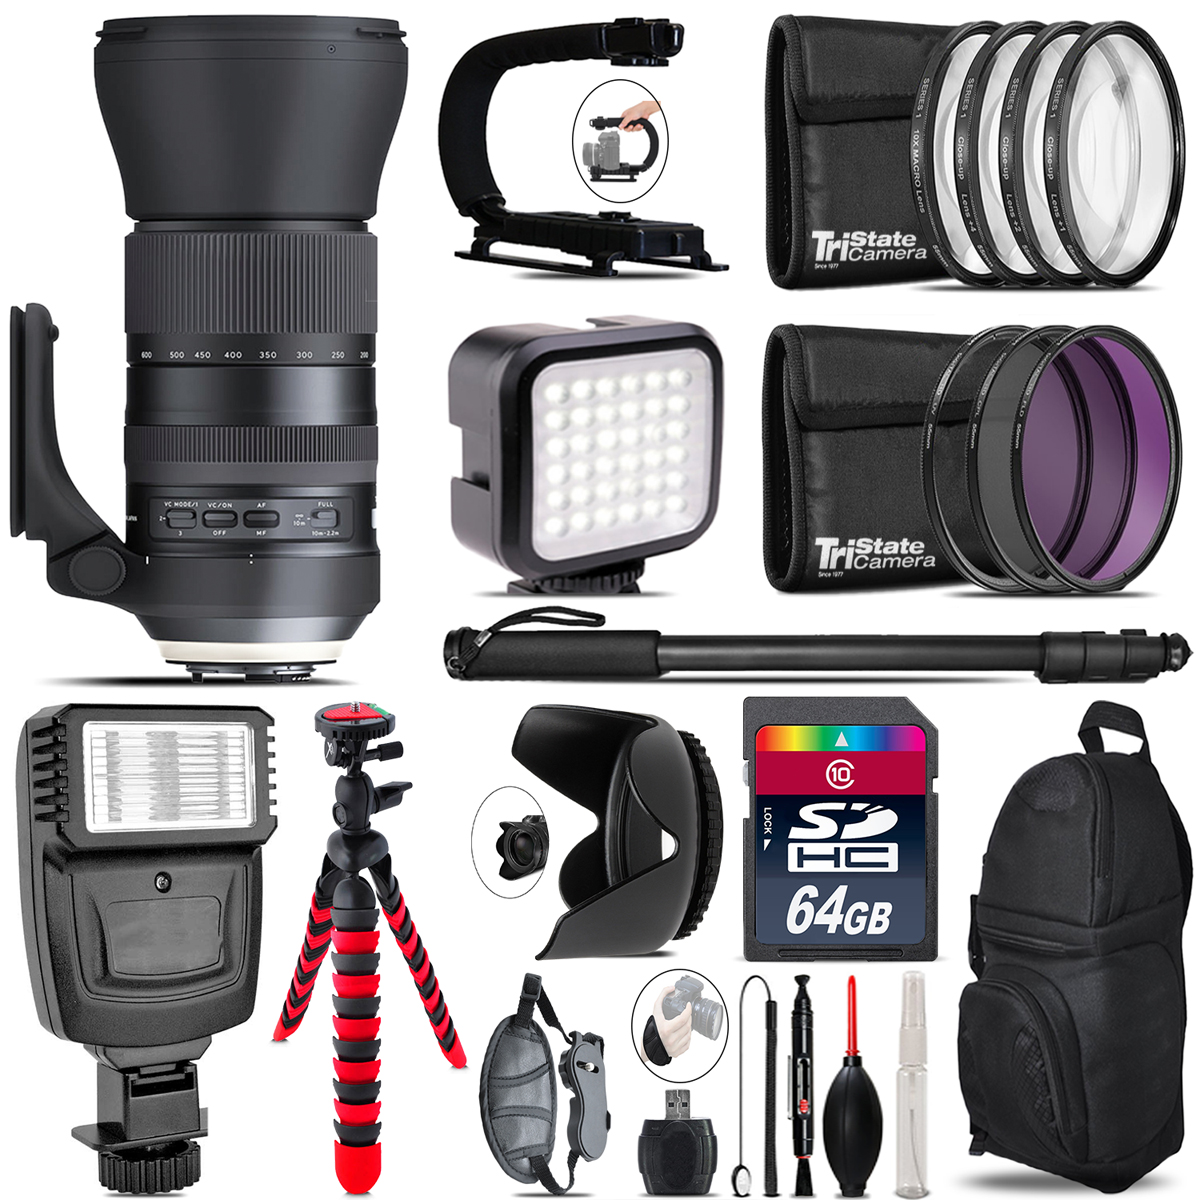 Tamron 150-600mm G2 for Nikon - Video Kit + Flash - 64GB Accessory Bundle *FREE SHIPPING*